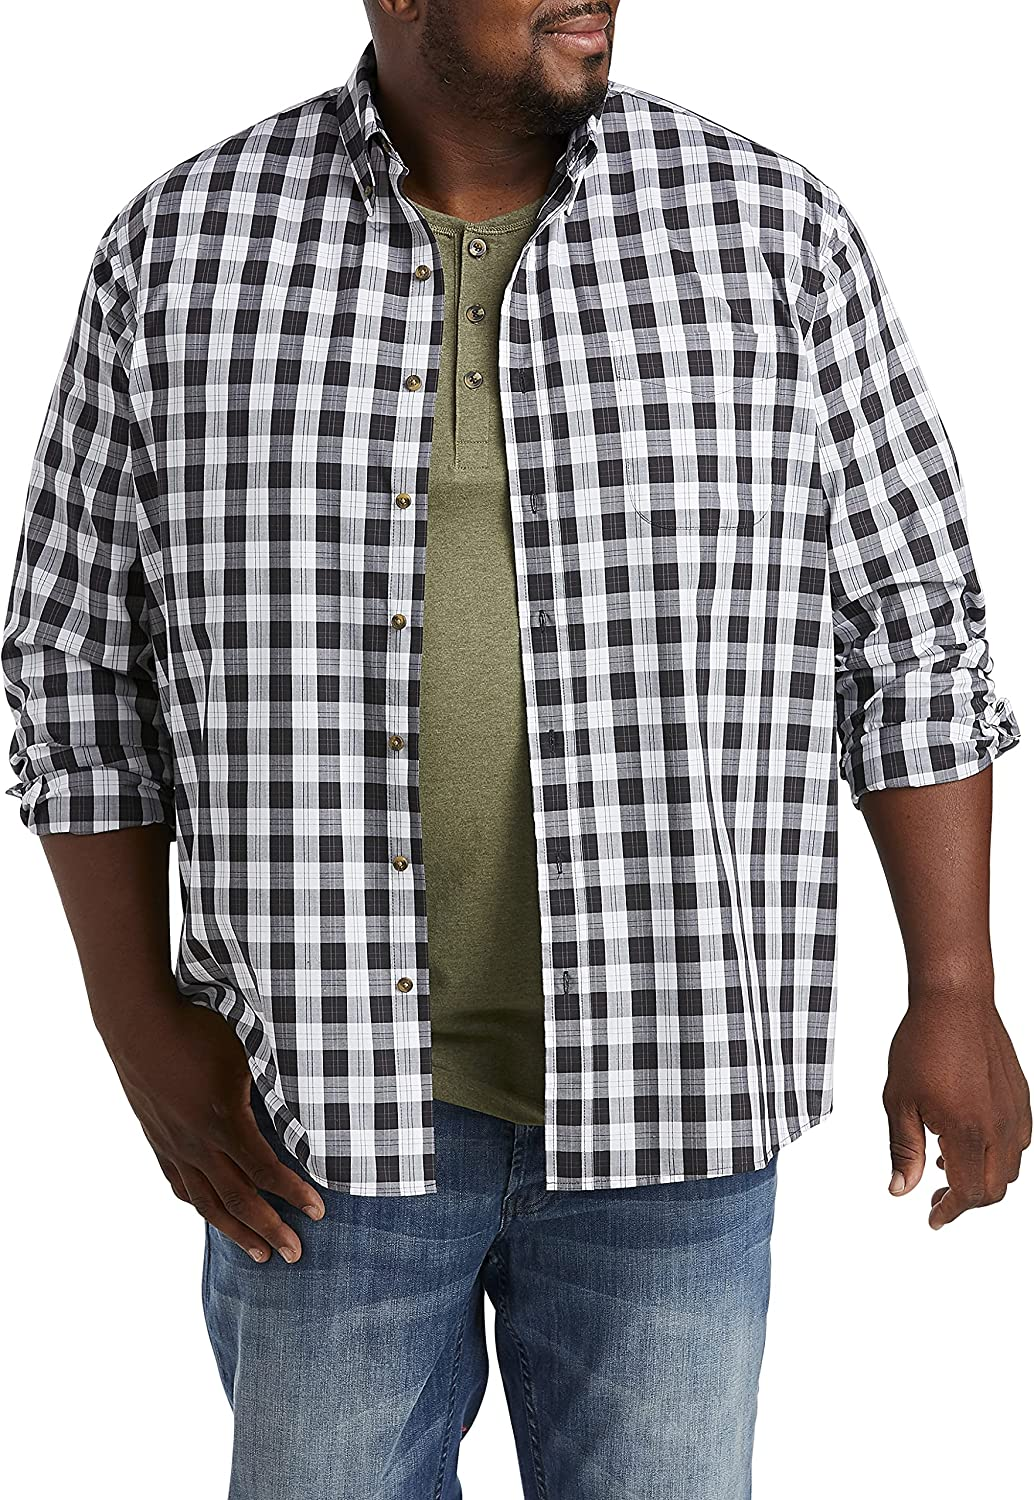 Harbor Bay by DXL Big and Tall Easy-Care Plaid Sport Shirt, Black